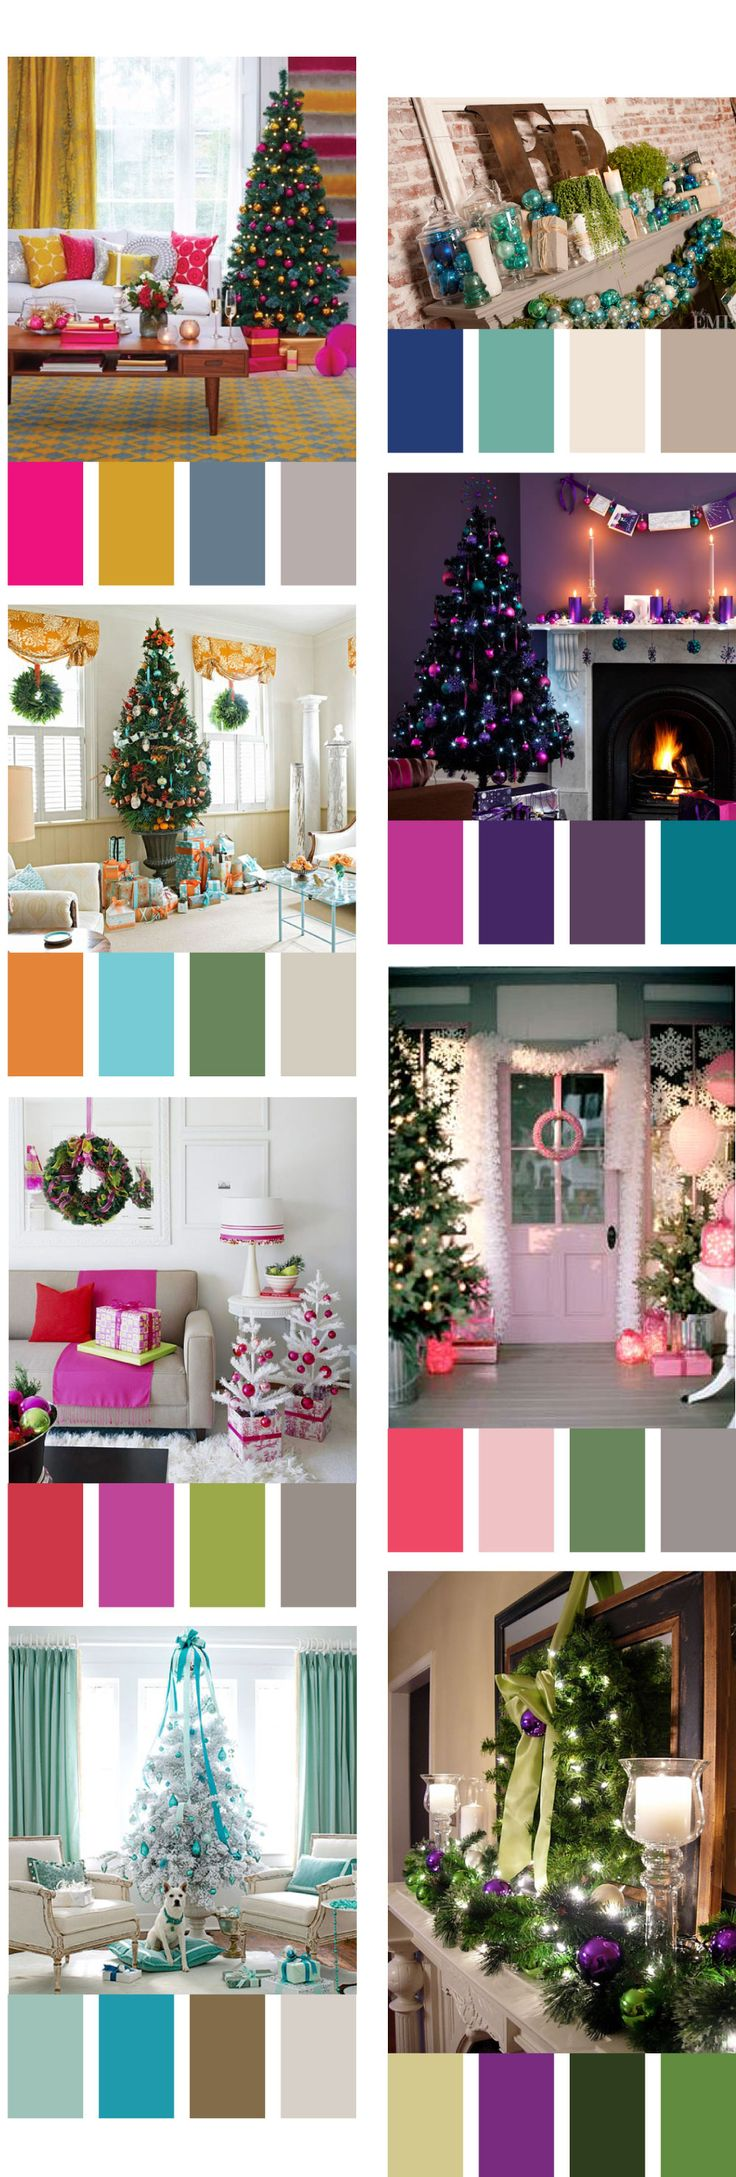 370 best images about church decorating ideas on pinterest - Christmas tree color schemes ...